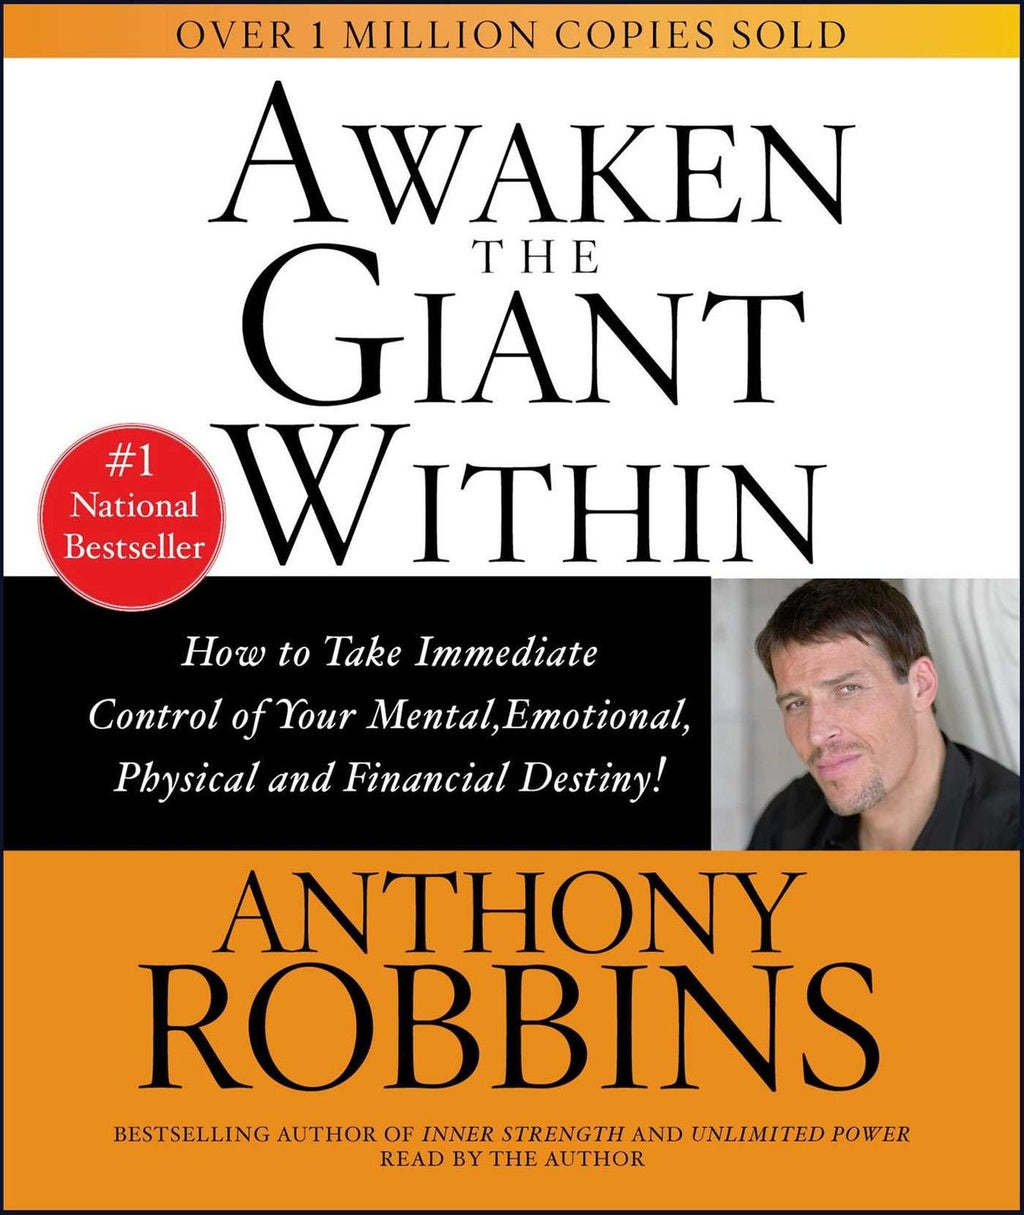 Awaken The Giant Within by Anthony Robbins, Audio CD